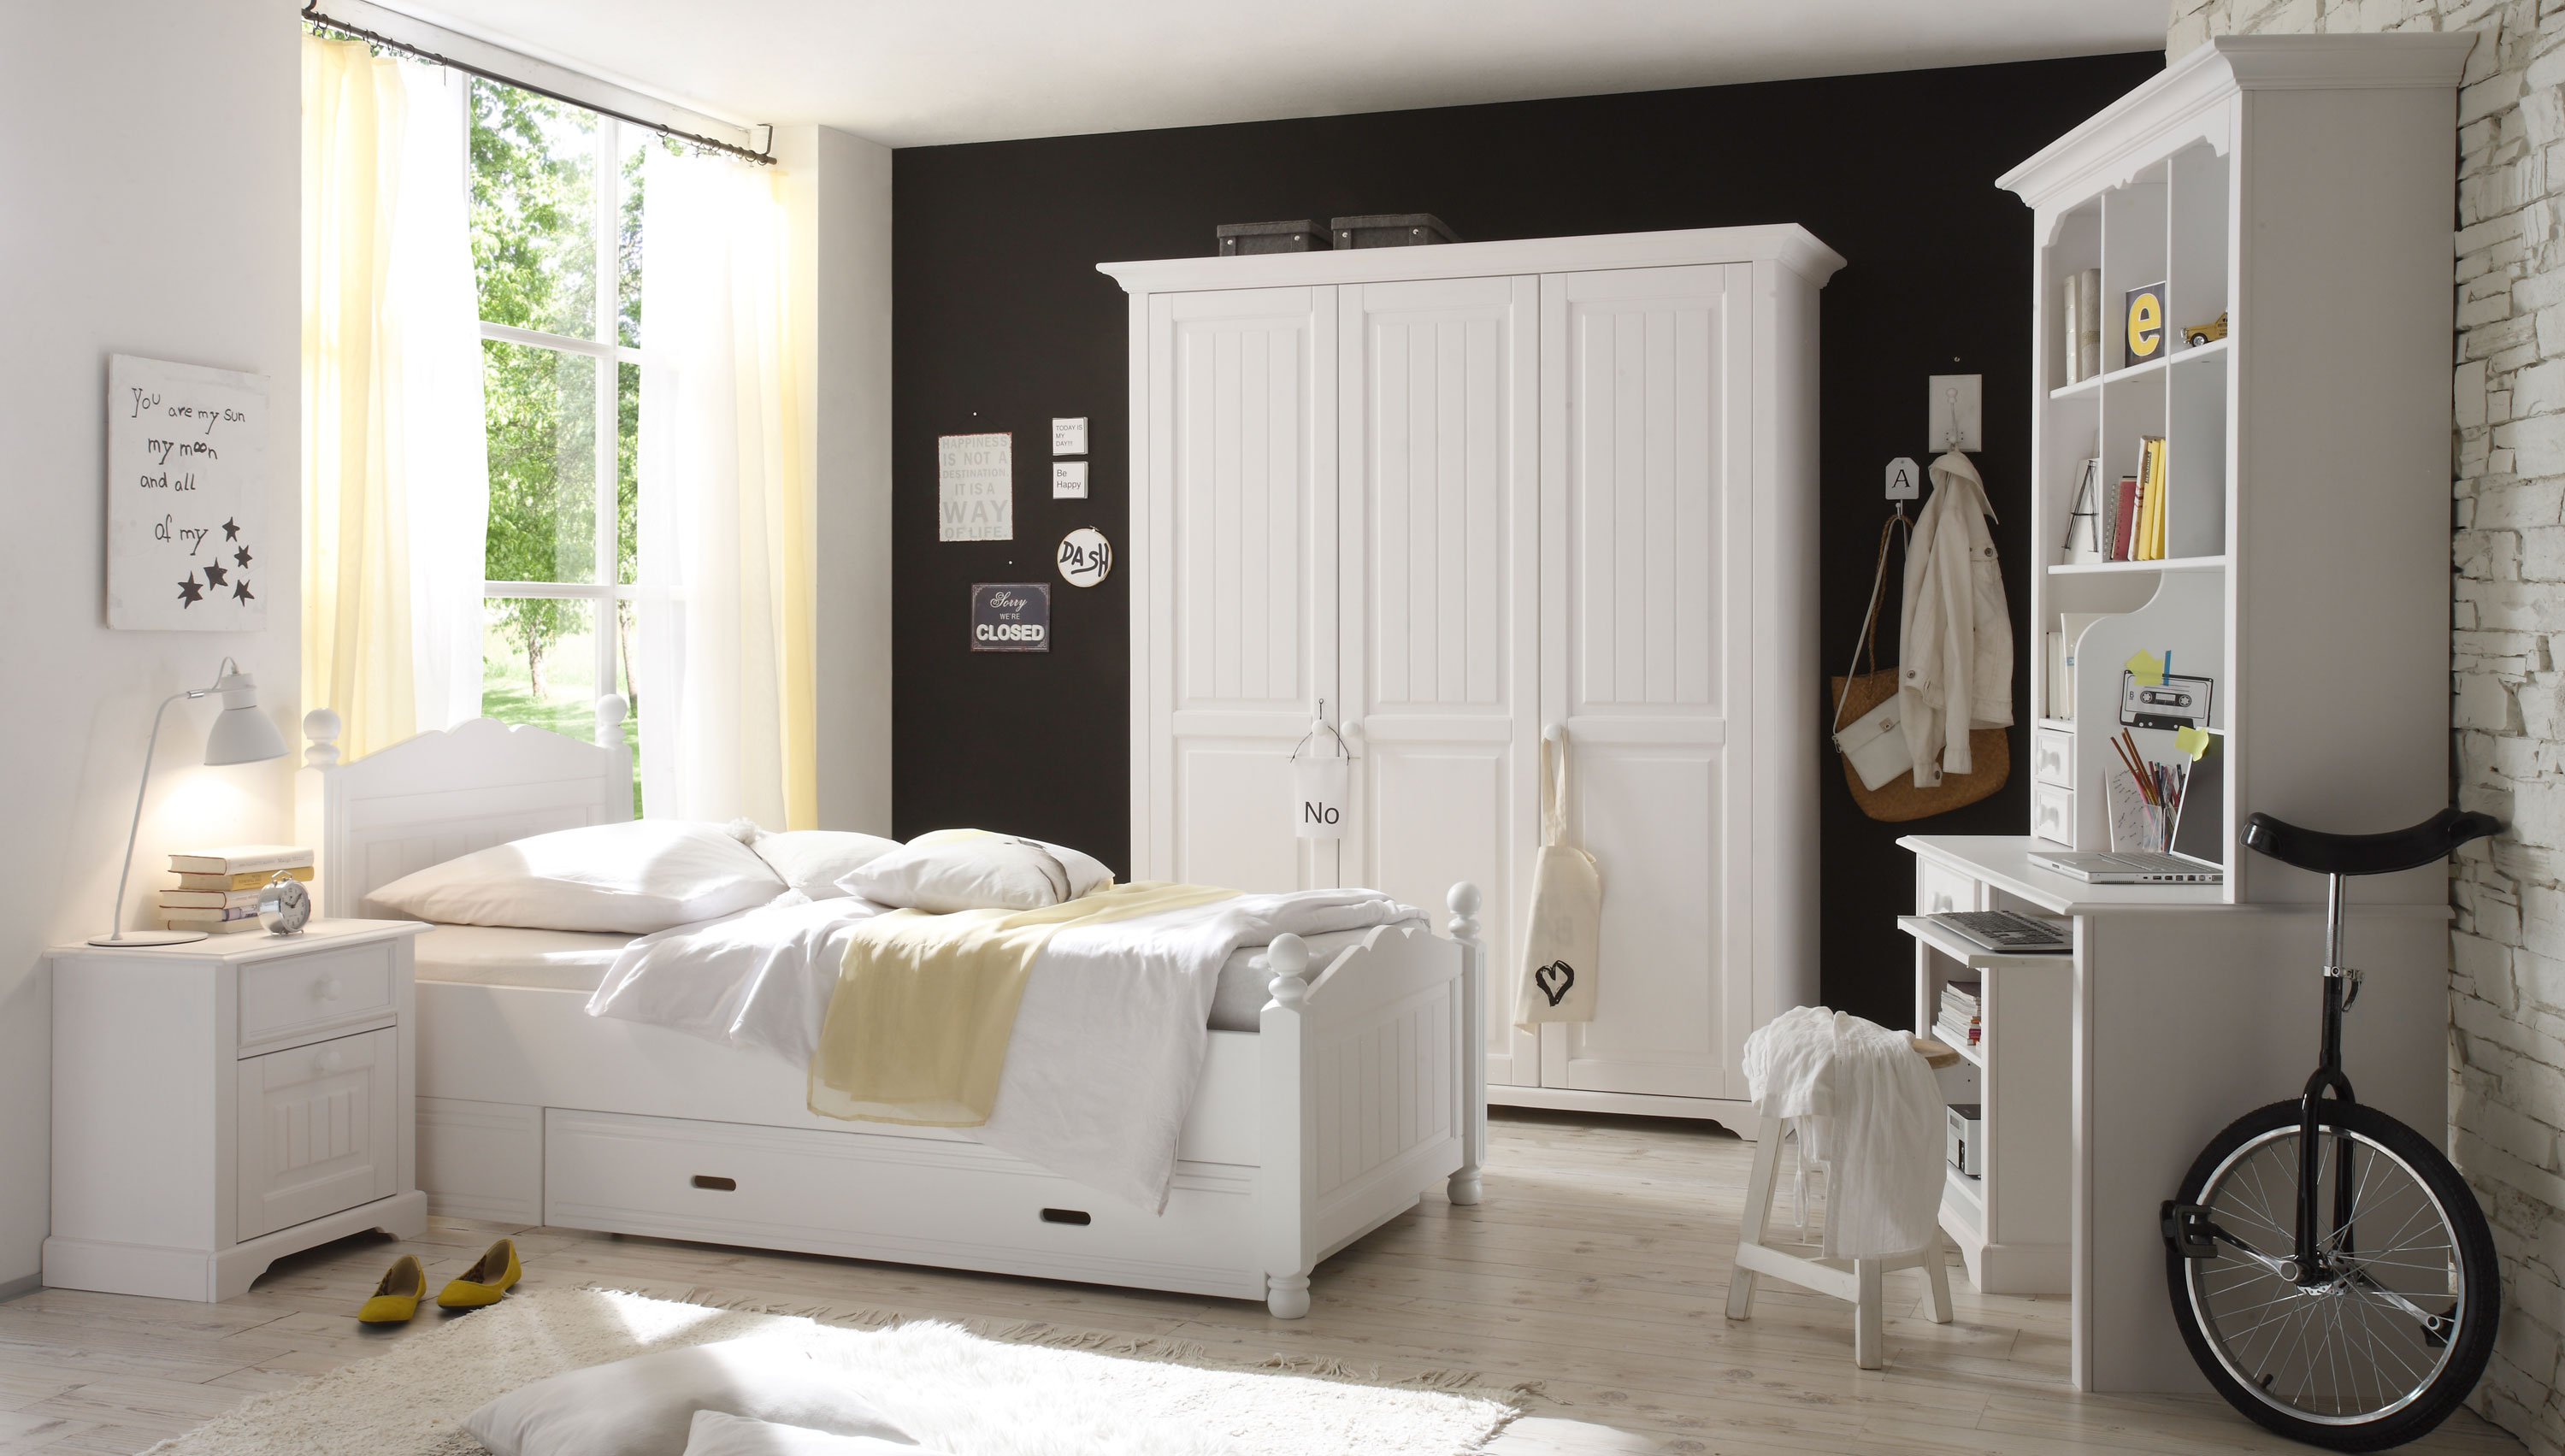 jugendzimmer komplett einrichten jungen m dchen m belmeile24. Black Bedroom Furniture Sets. Home Design Ideas